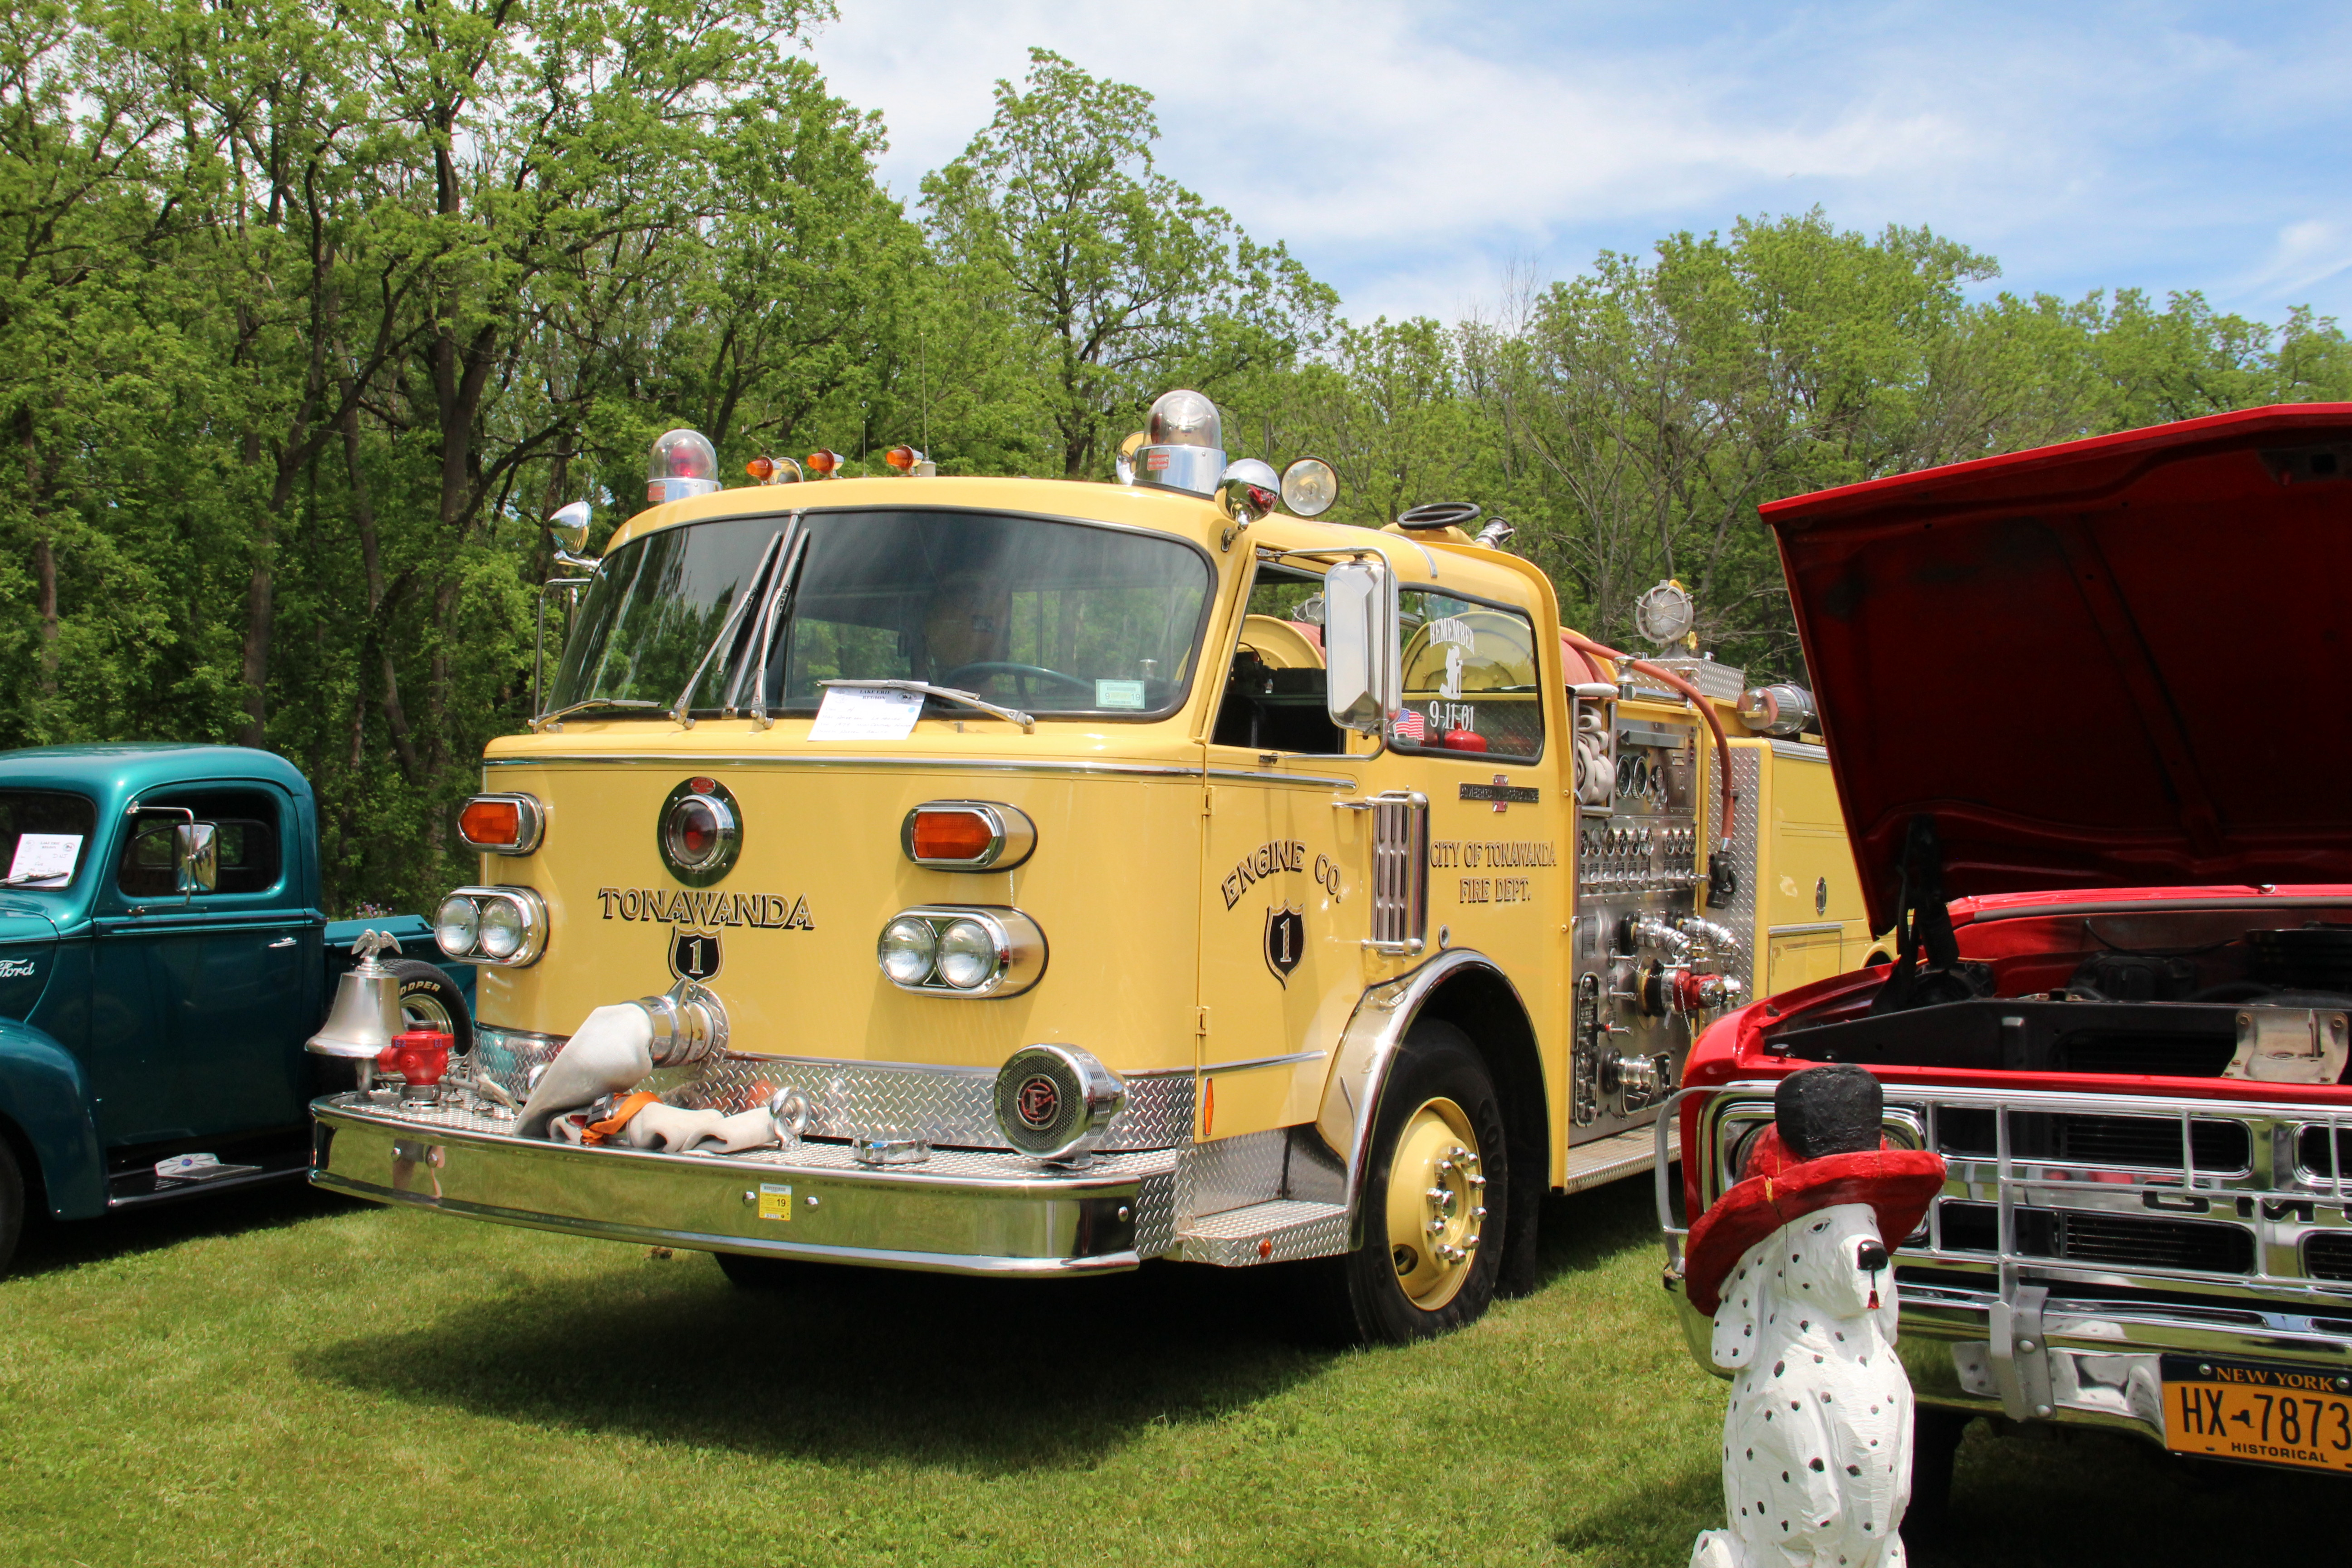 IMG_0593-Class-14-Andrew-Balling-1979-American-LaFrance-Century-pumper